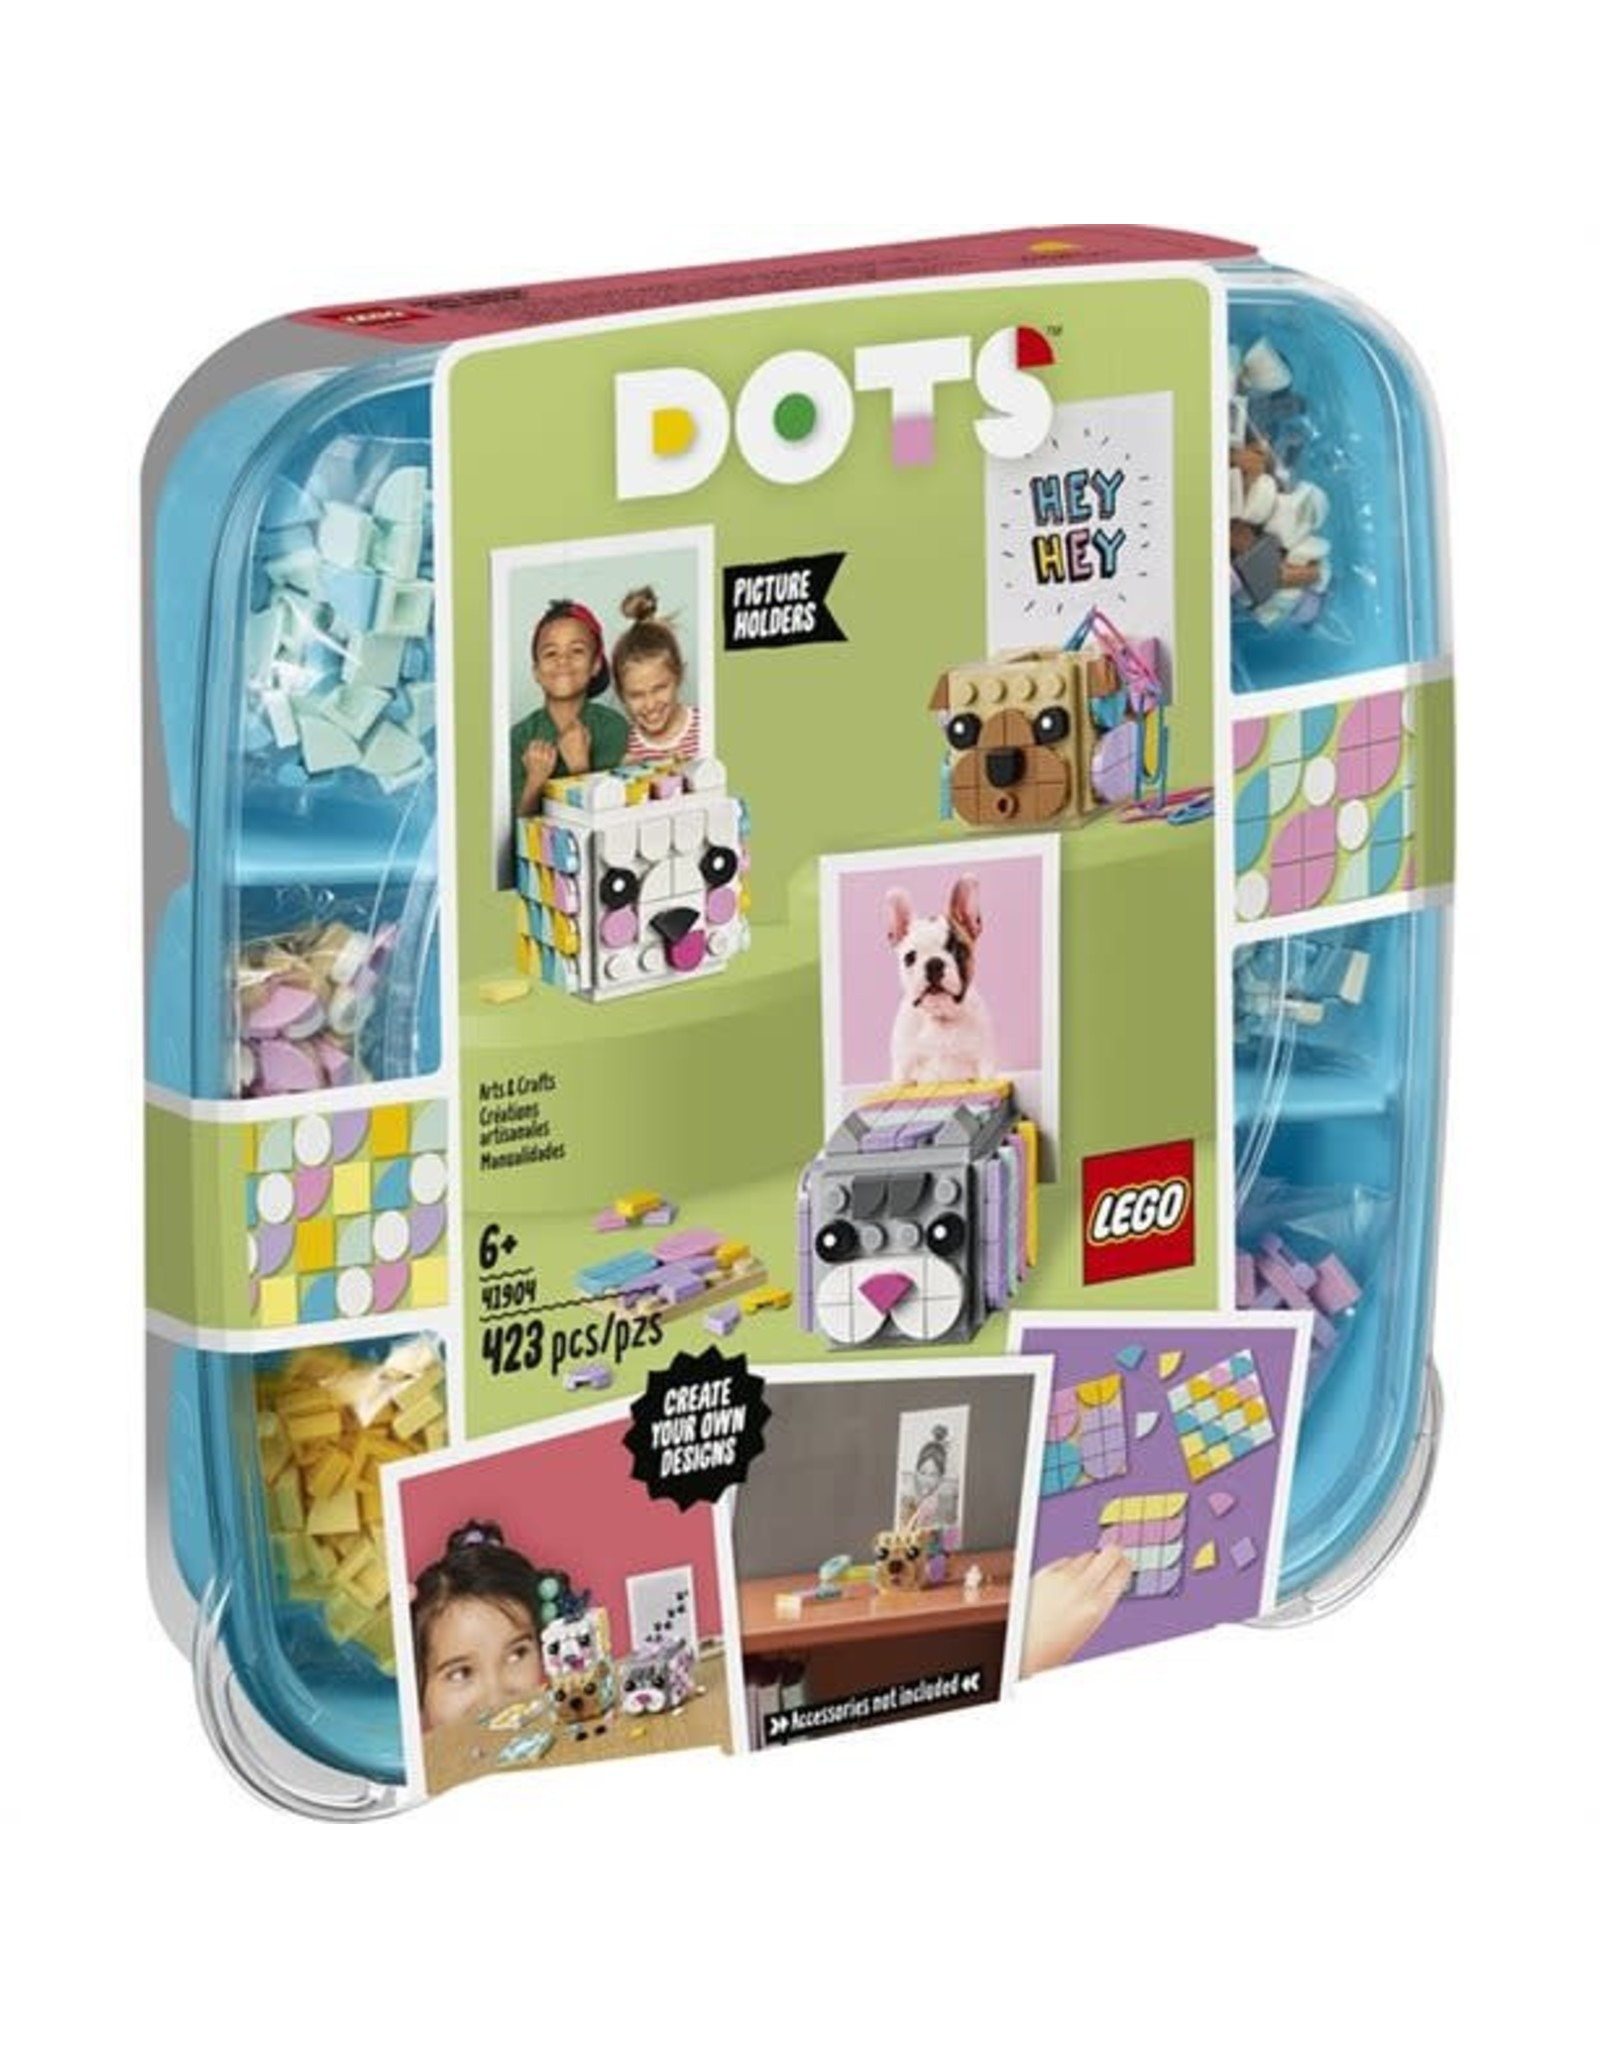 Lego DOTS   Animal Picture Holders   Toy Box